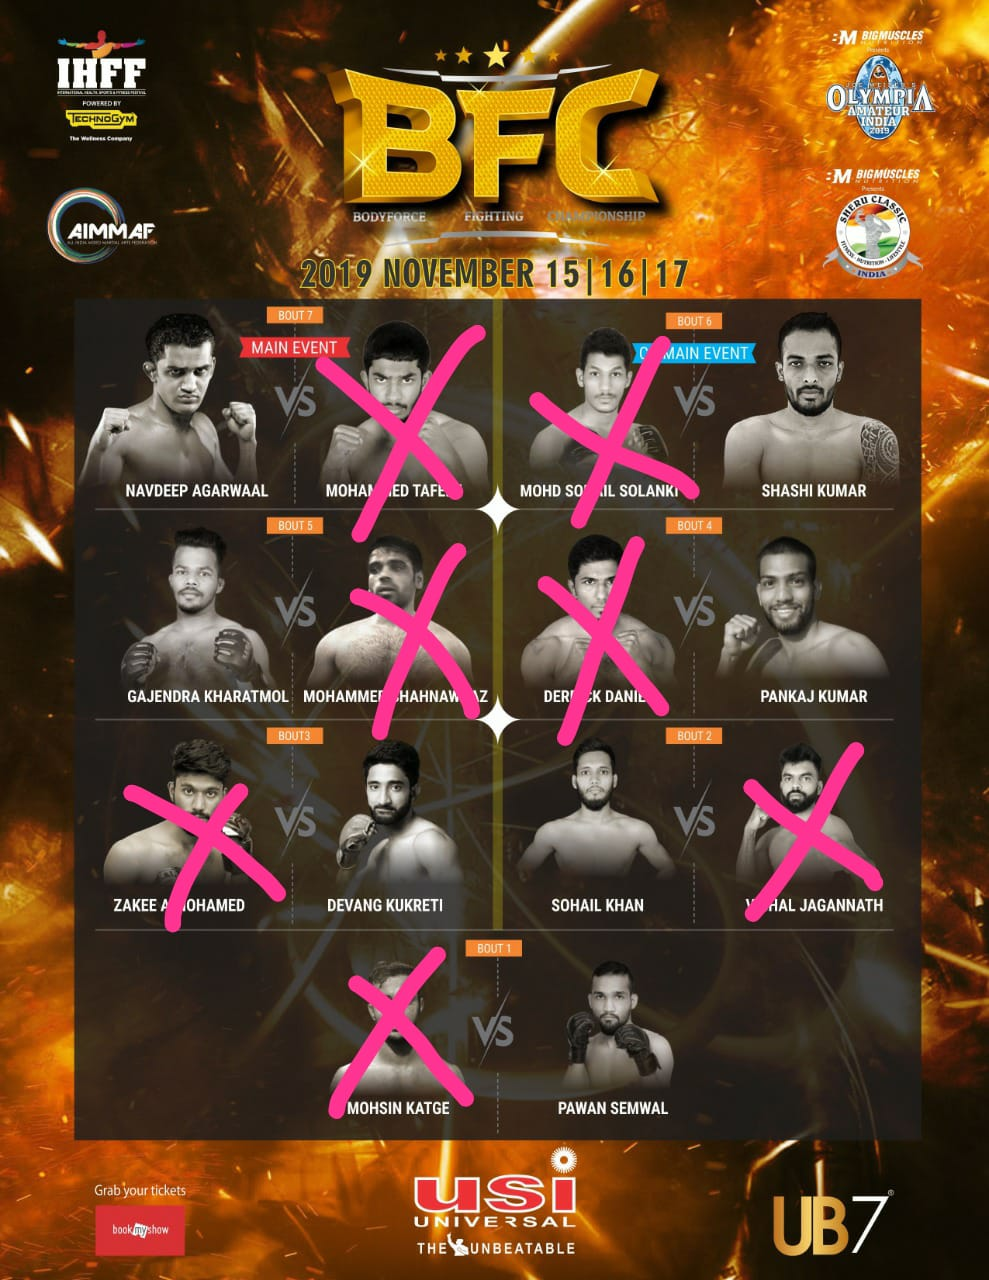 Here are the results of the recently concluded 3 Day Fight event ( MMA & Kickboxing ) organised by AIMMAF - IHFF